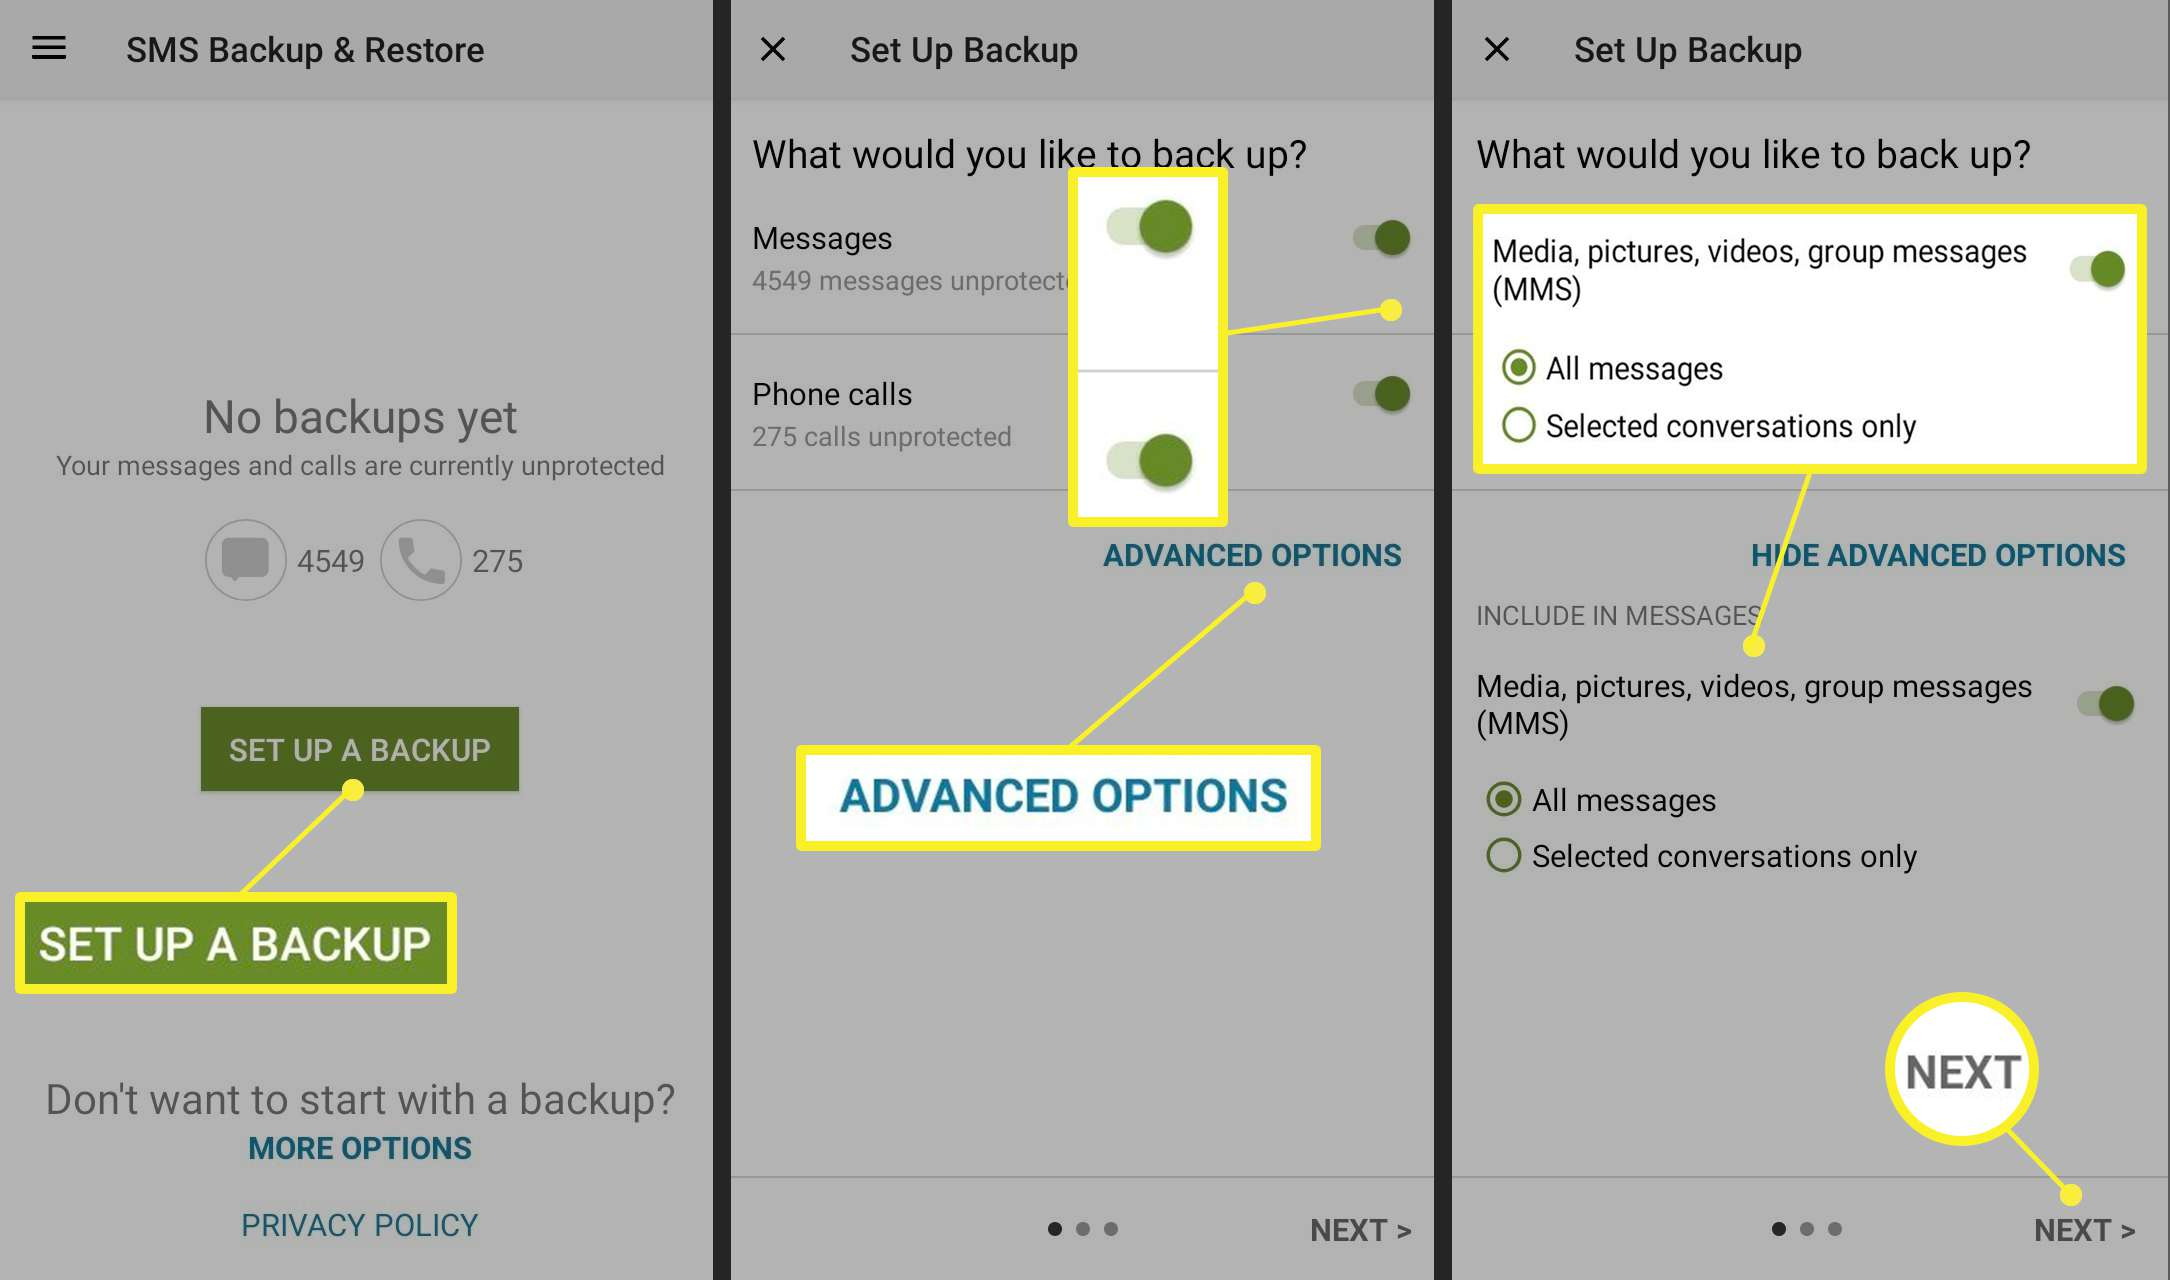 SMS Backup & Restore app screens for Android backups